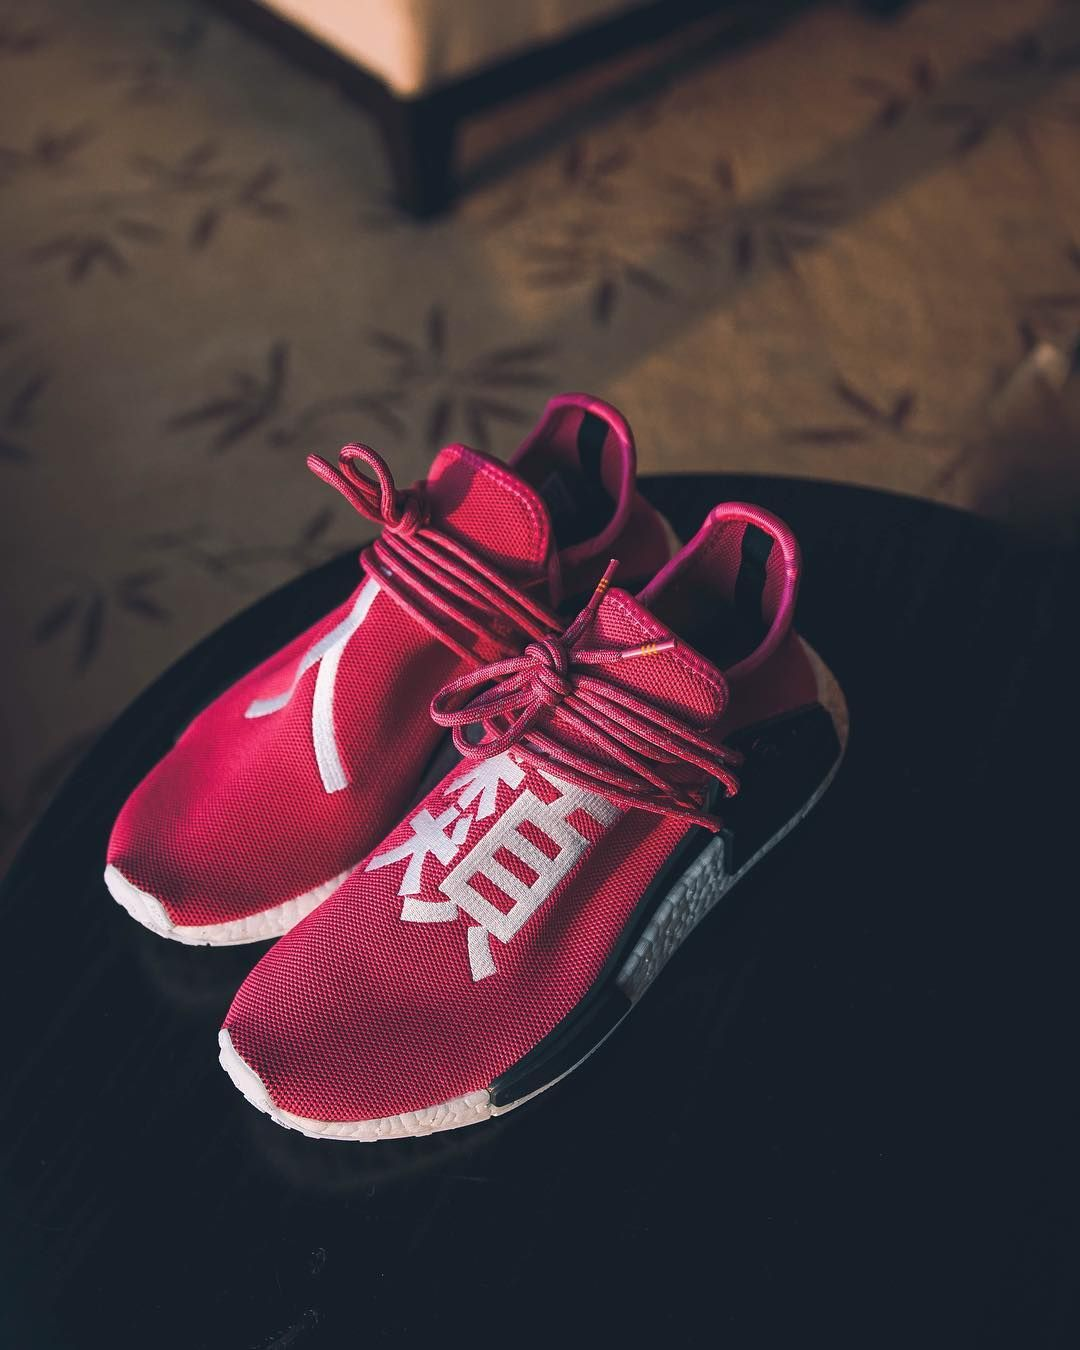 7ecee8c374ae Pharrell Williams x adidas Human Race NMD